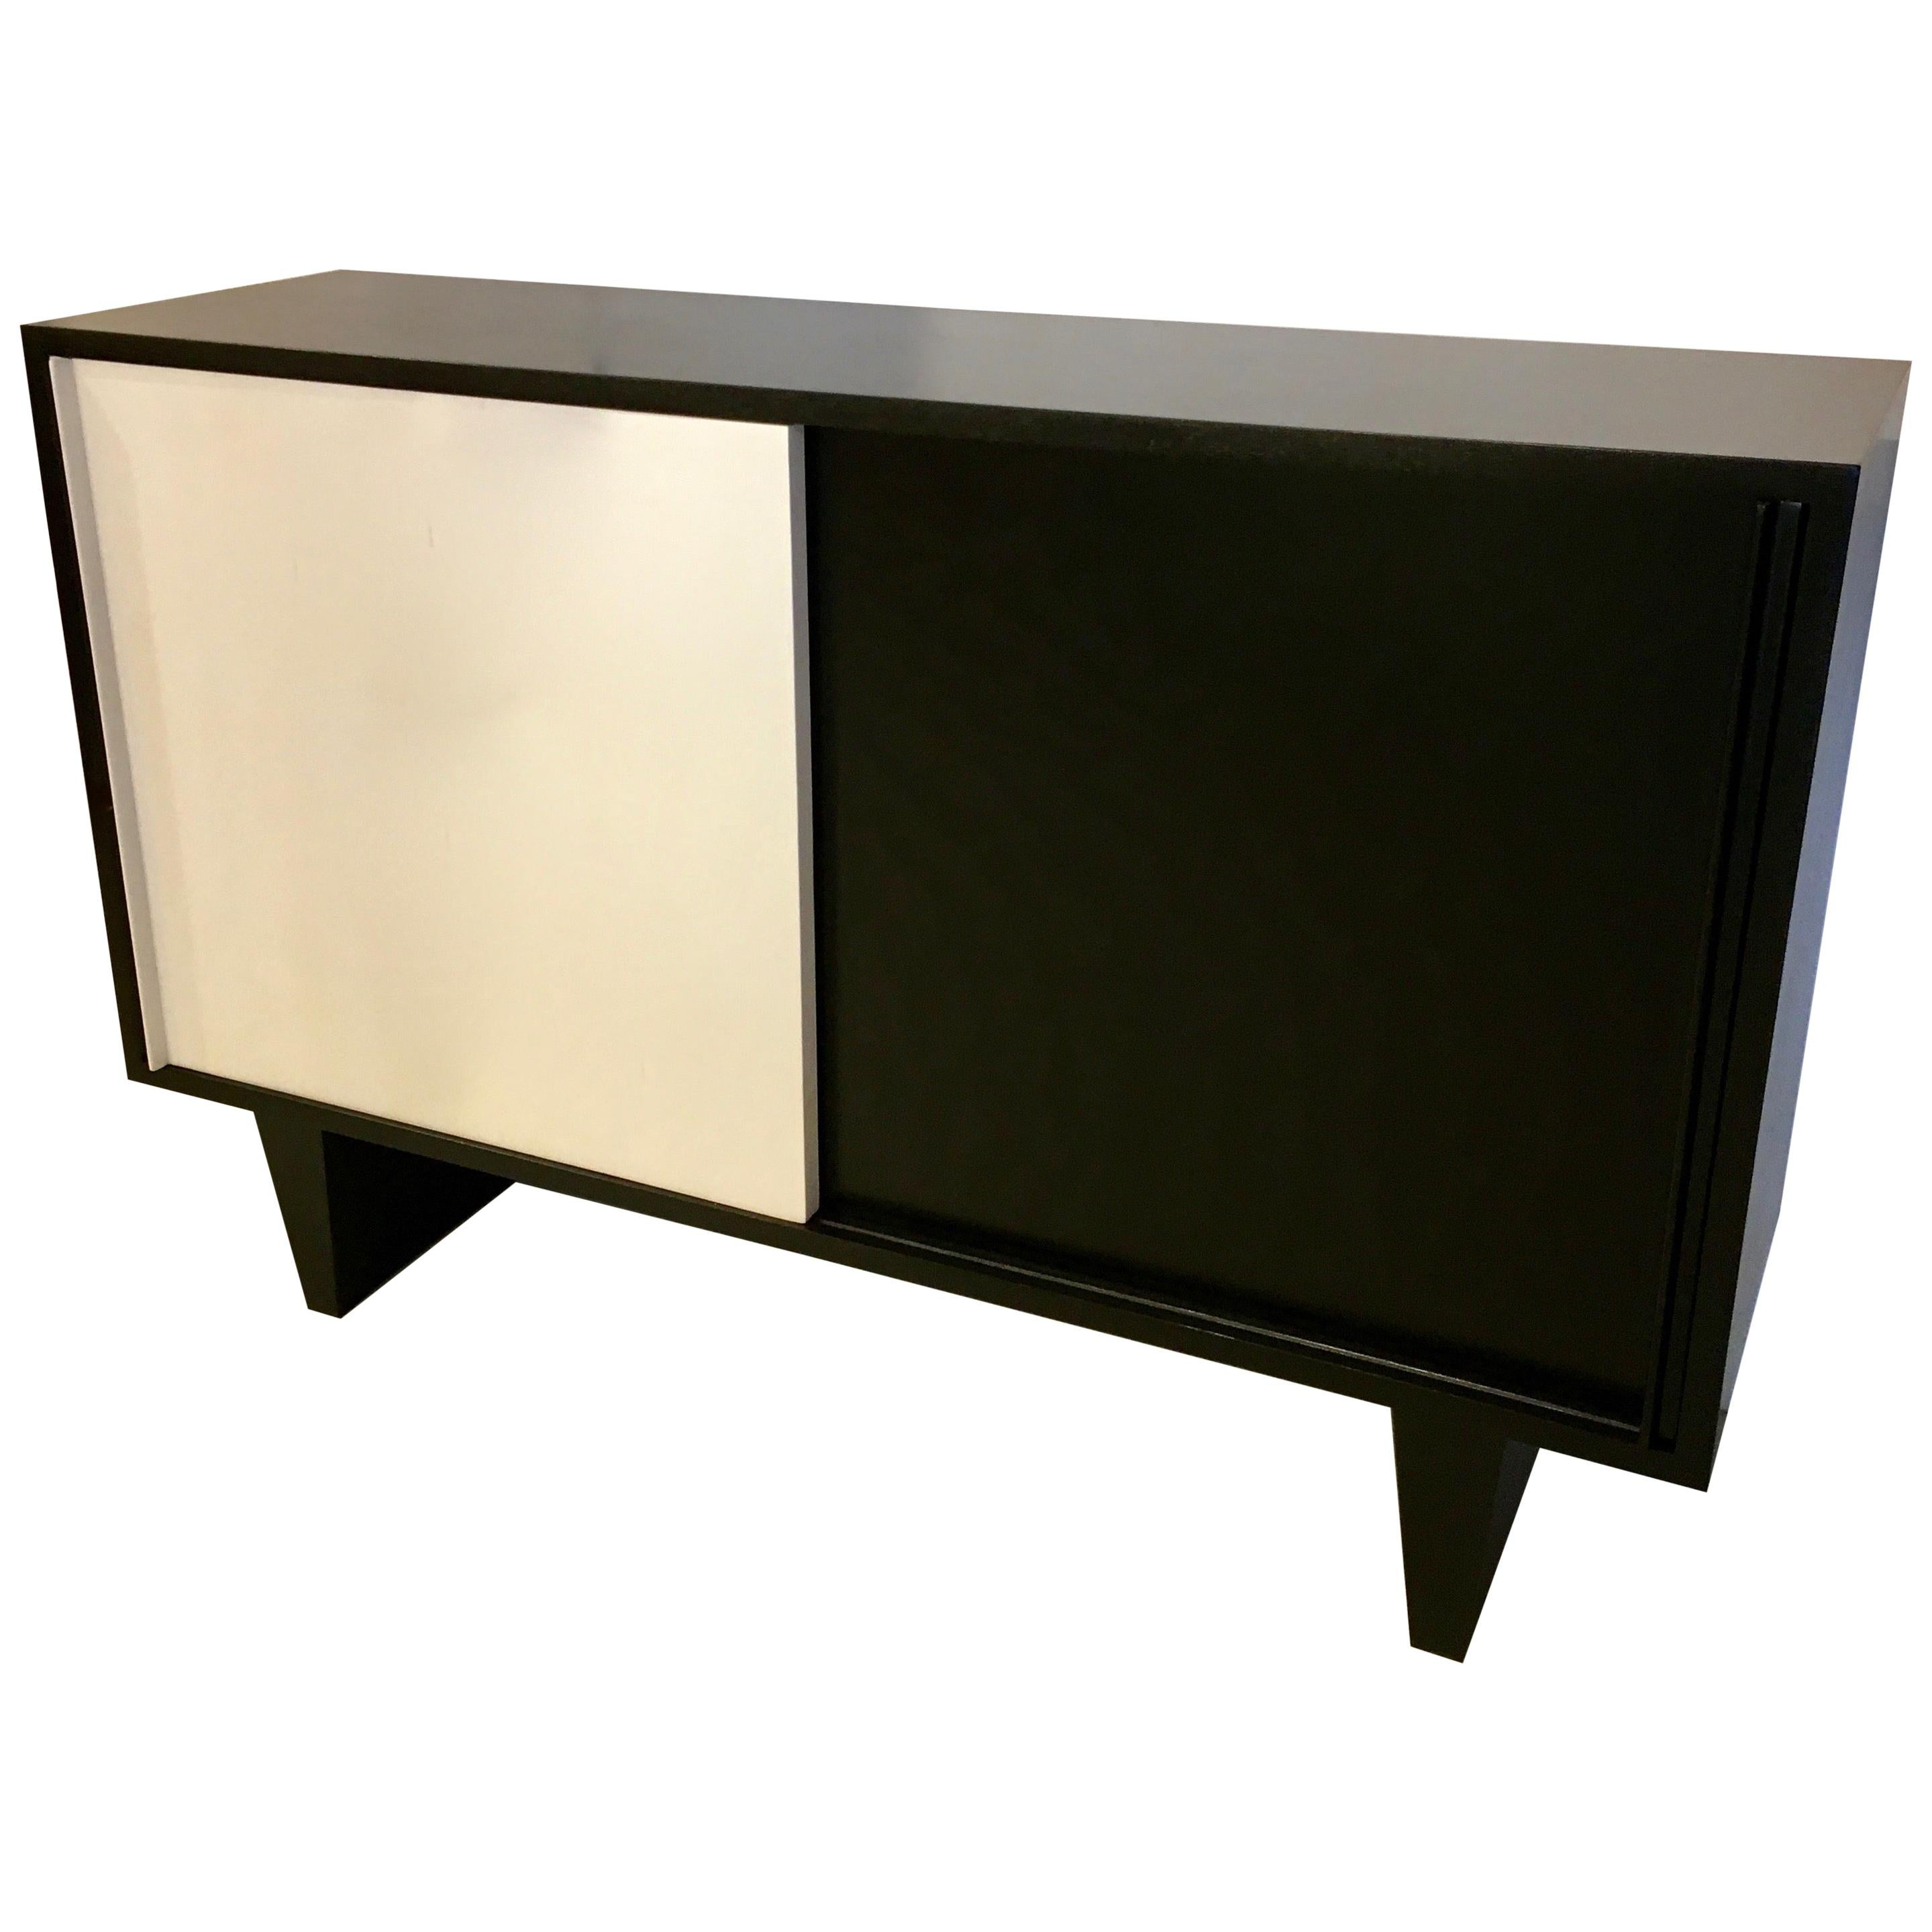 Black and White Sideboard by De Coene Courtrai, Belgium, 1955